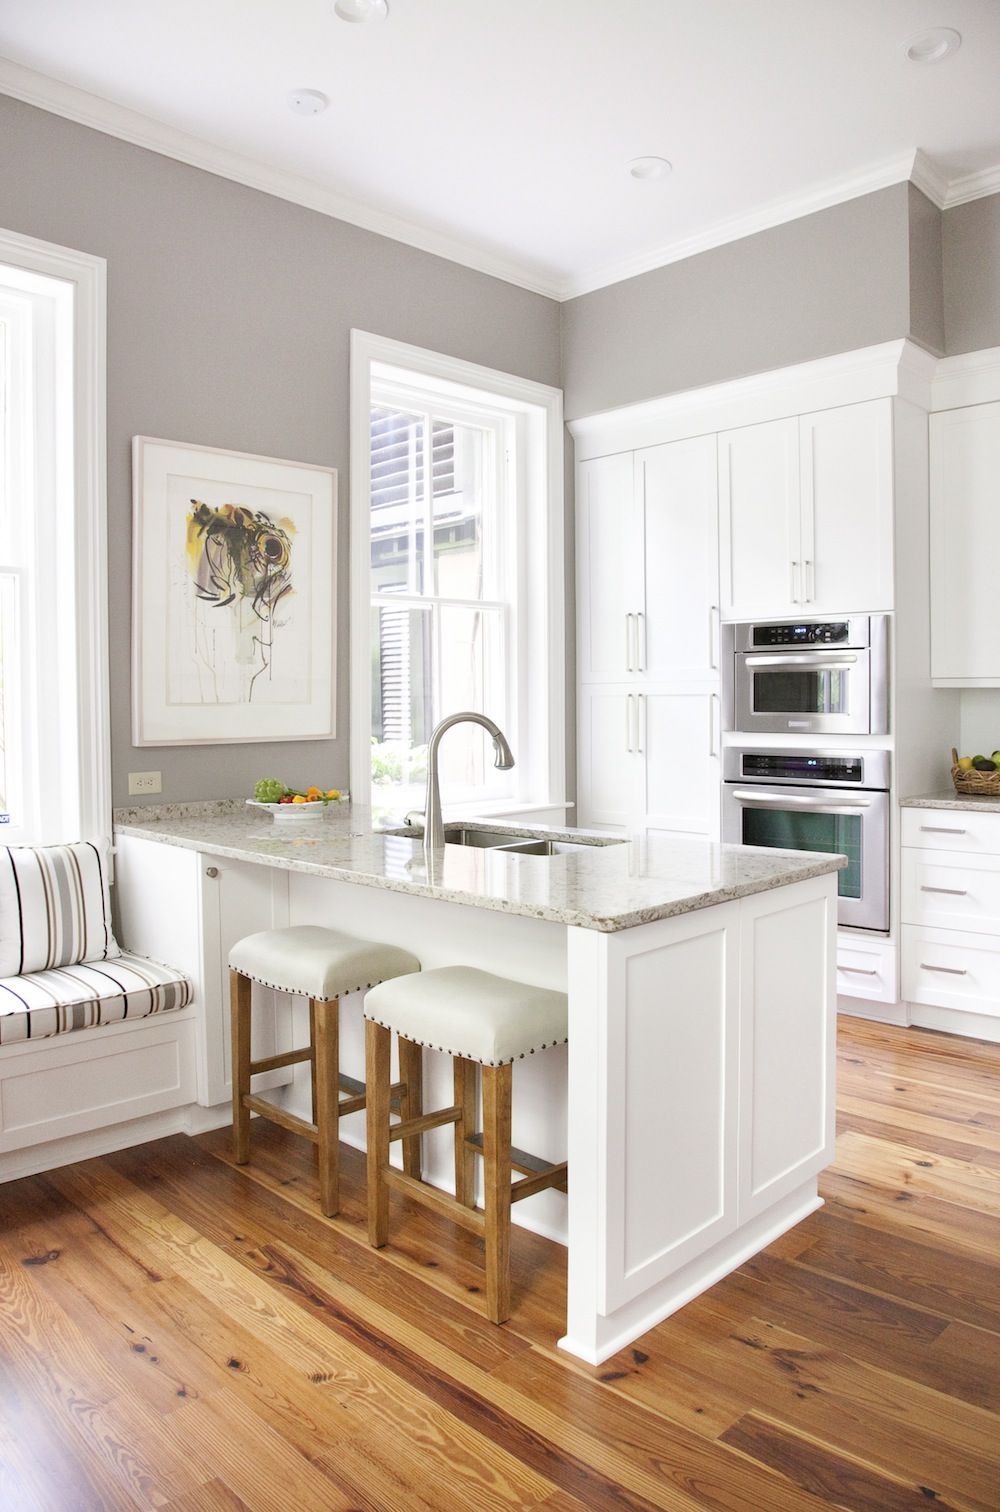 Warm Inviting Kitchen | Marble countertops, White cabinets and ...